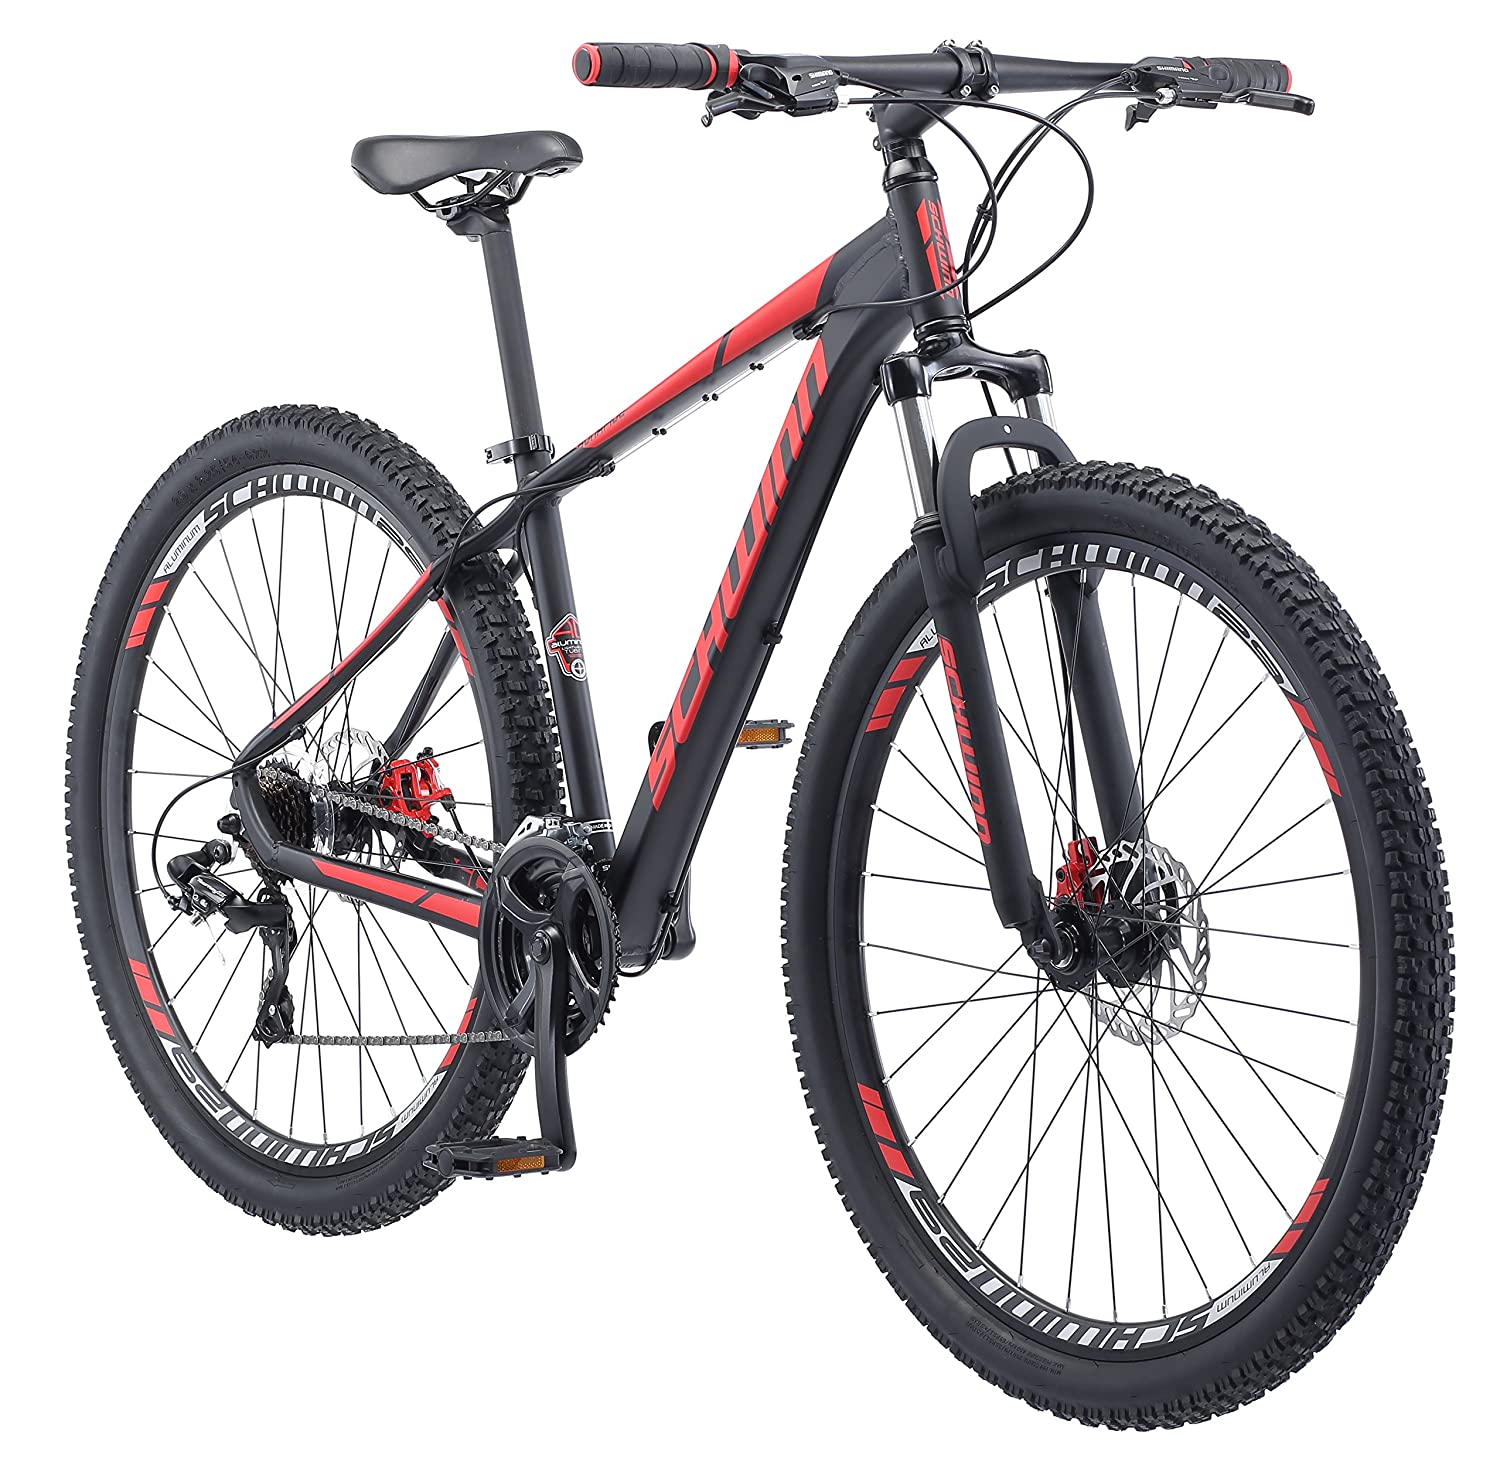 Schwinn Bonafide Mountain Bike with Front Suspension, Featuring  17-Inch/Medium Aluminum Frame and 24-Speed Shimano Drivetrain with 29-Inch  Wheels and